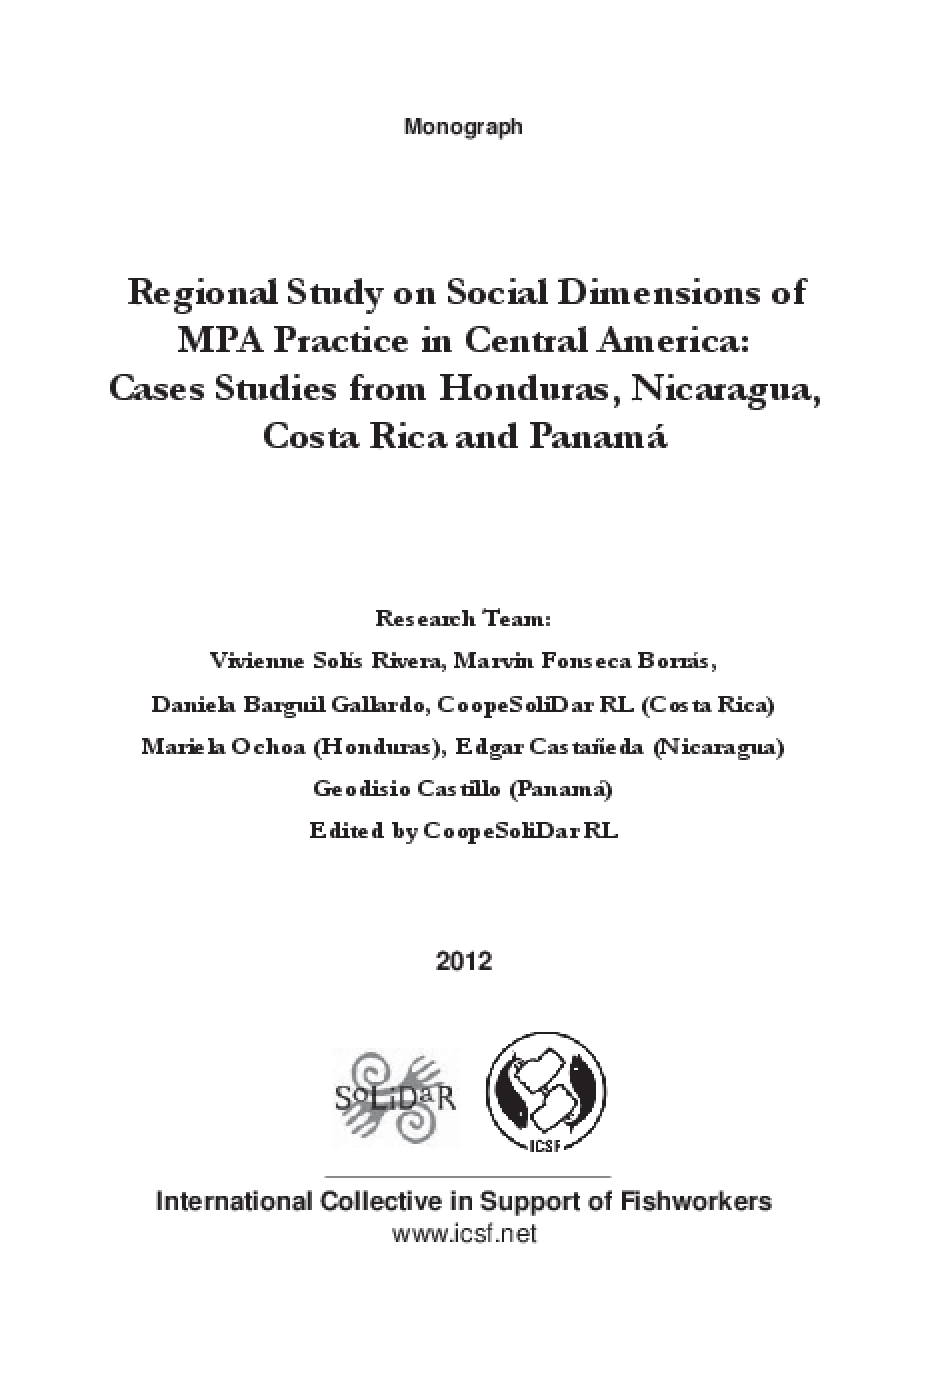 Regional Study on Social Dimensions of MPA Practice in Central America: Cases Studies from Honduras, Nicaragua, Costa Rica and Panamá